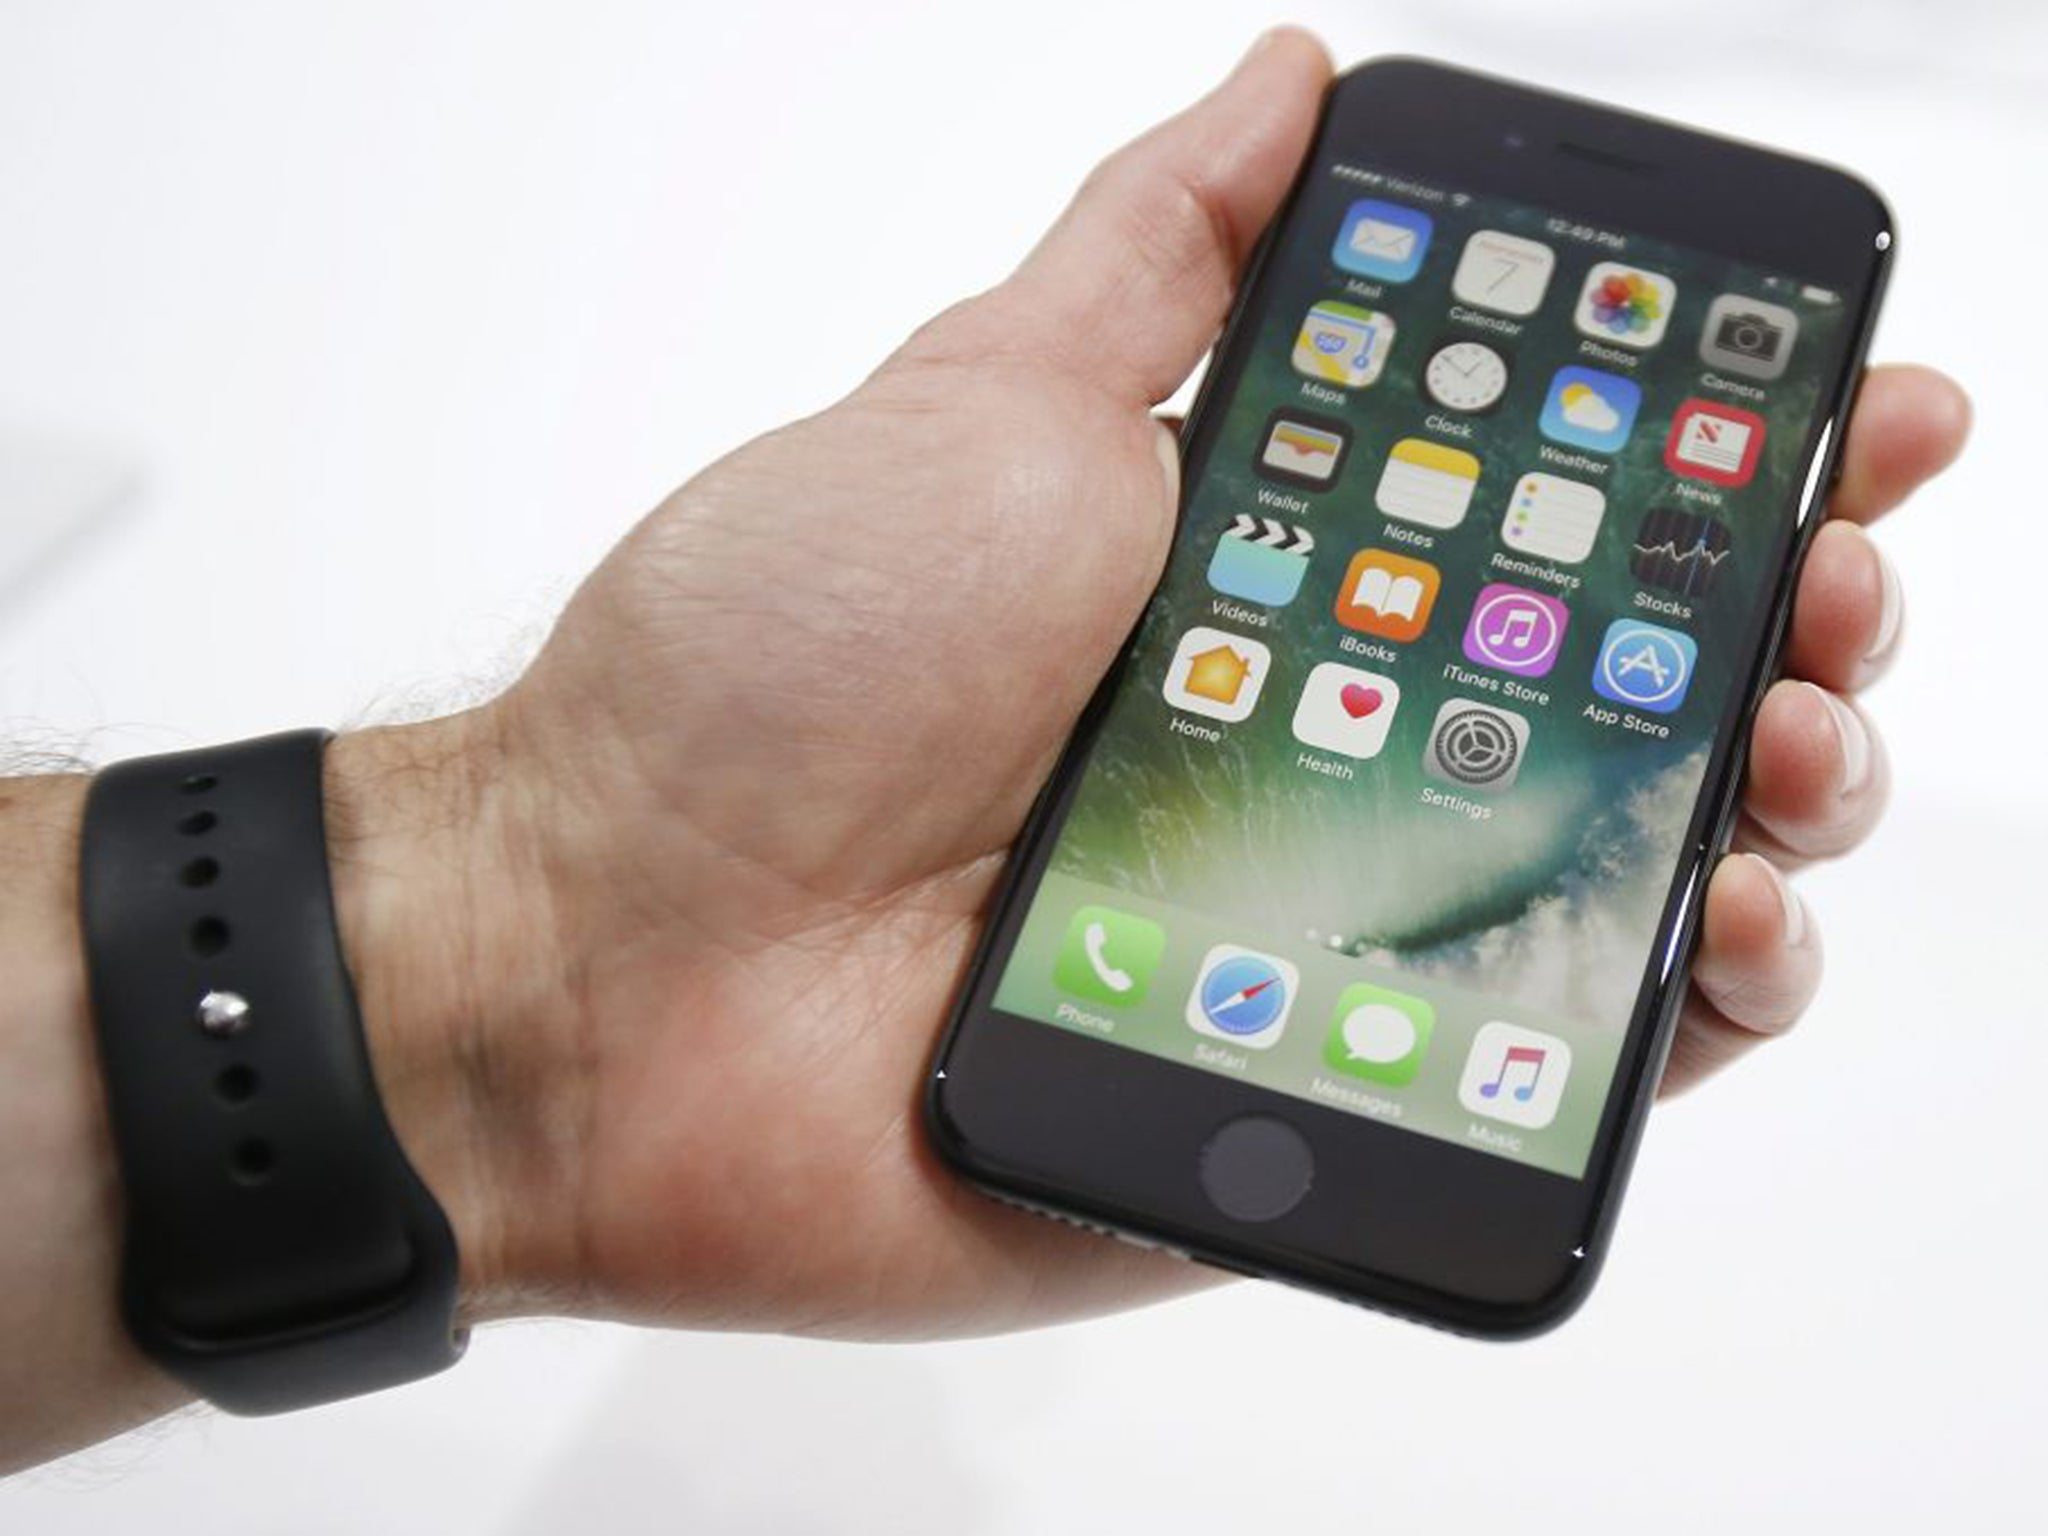 27 things you didn't know your iPhone could do